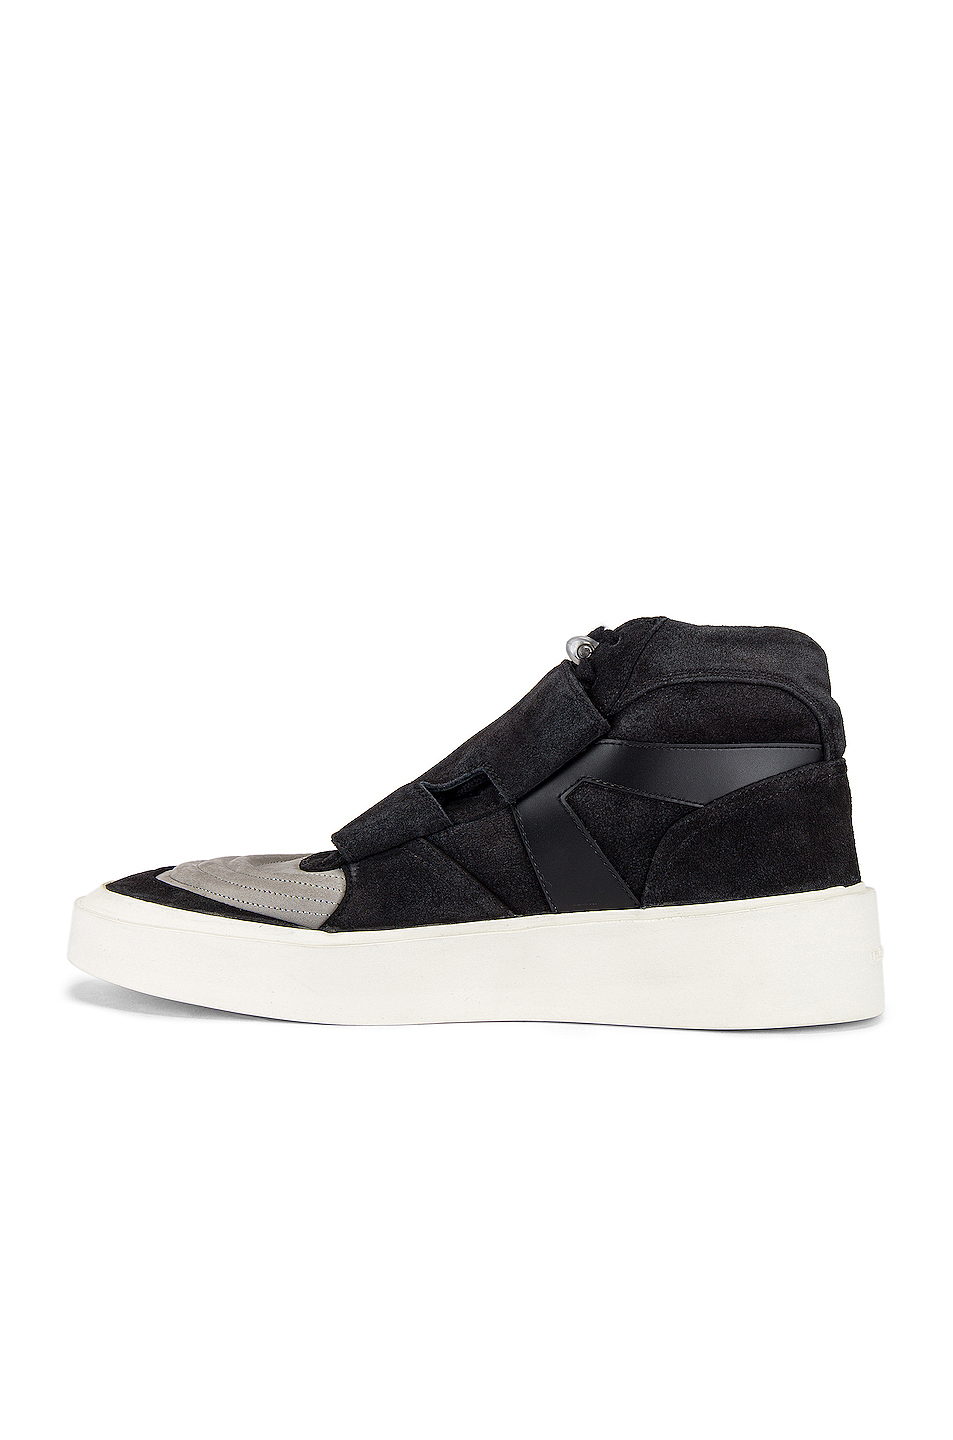 Fear of God Skate Mid Sneaker